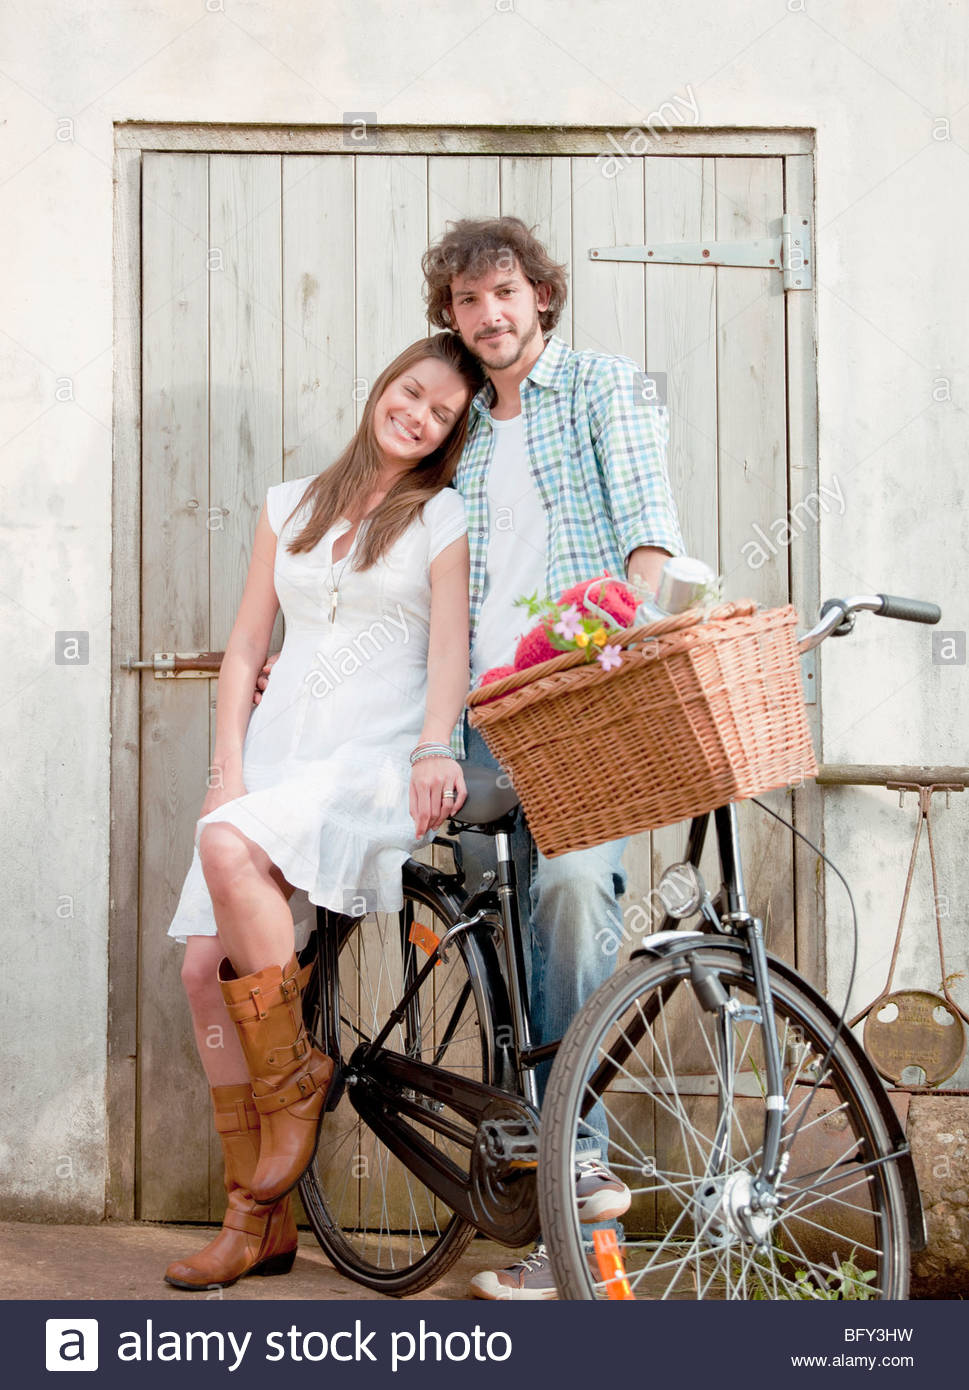 Man and woman together with bike - Stock Image